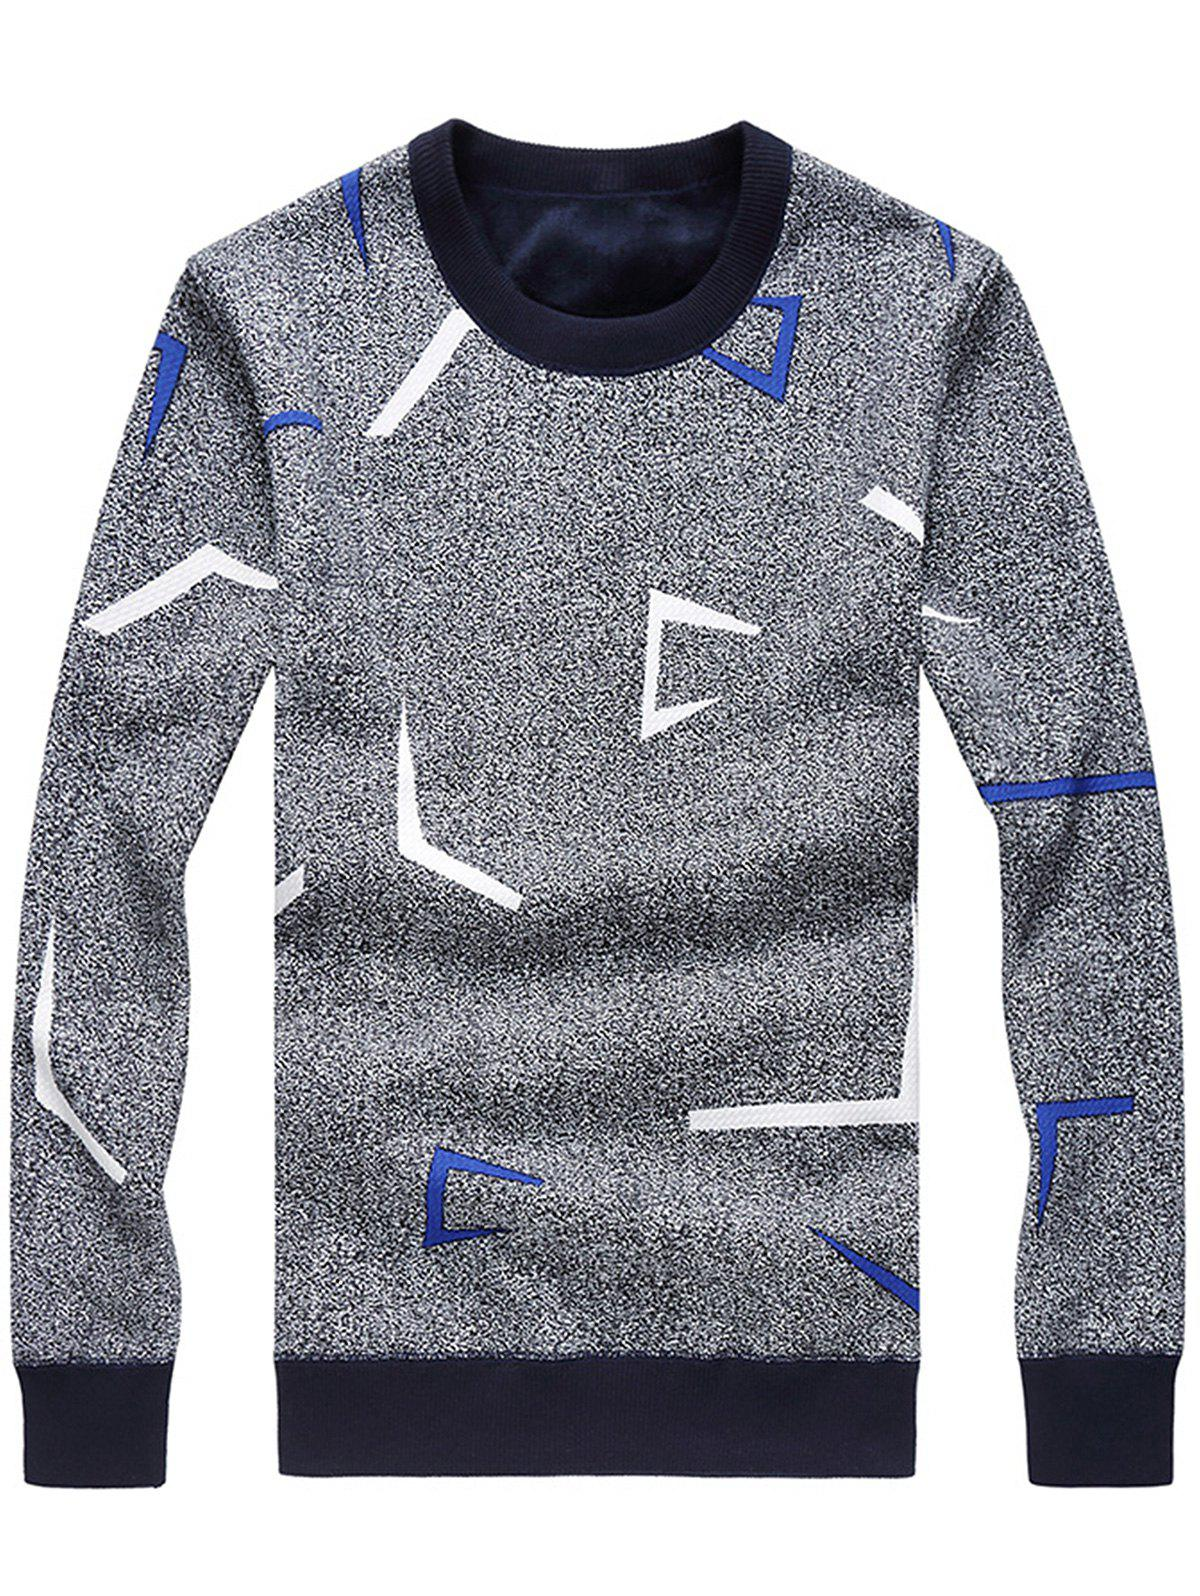 Sweat en jersey tricot couleur